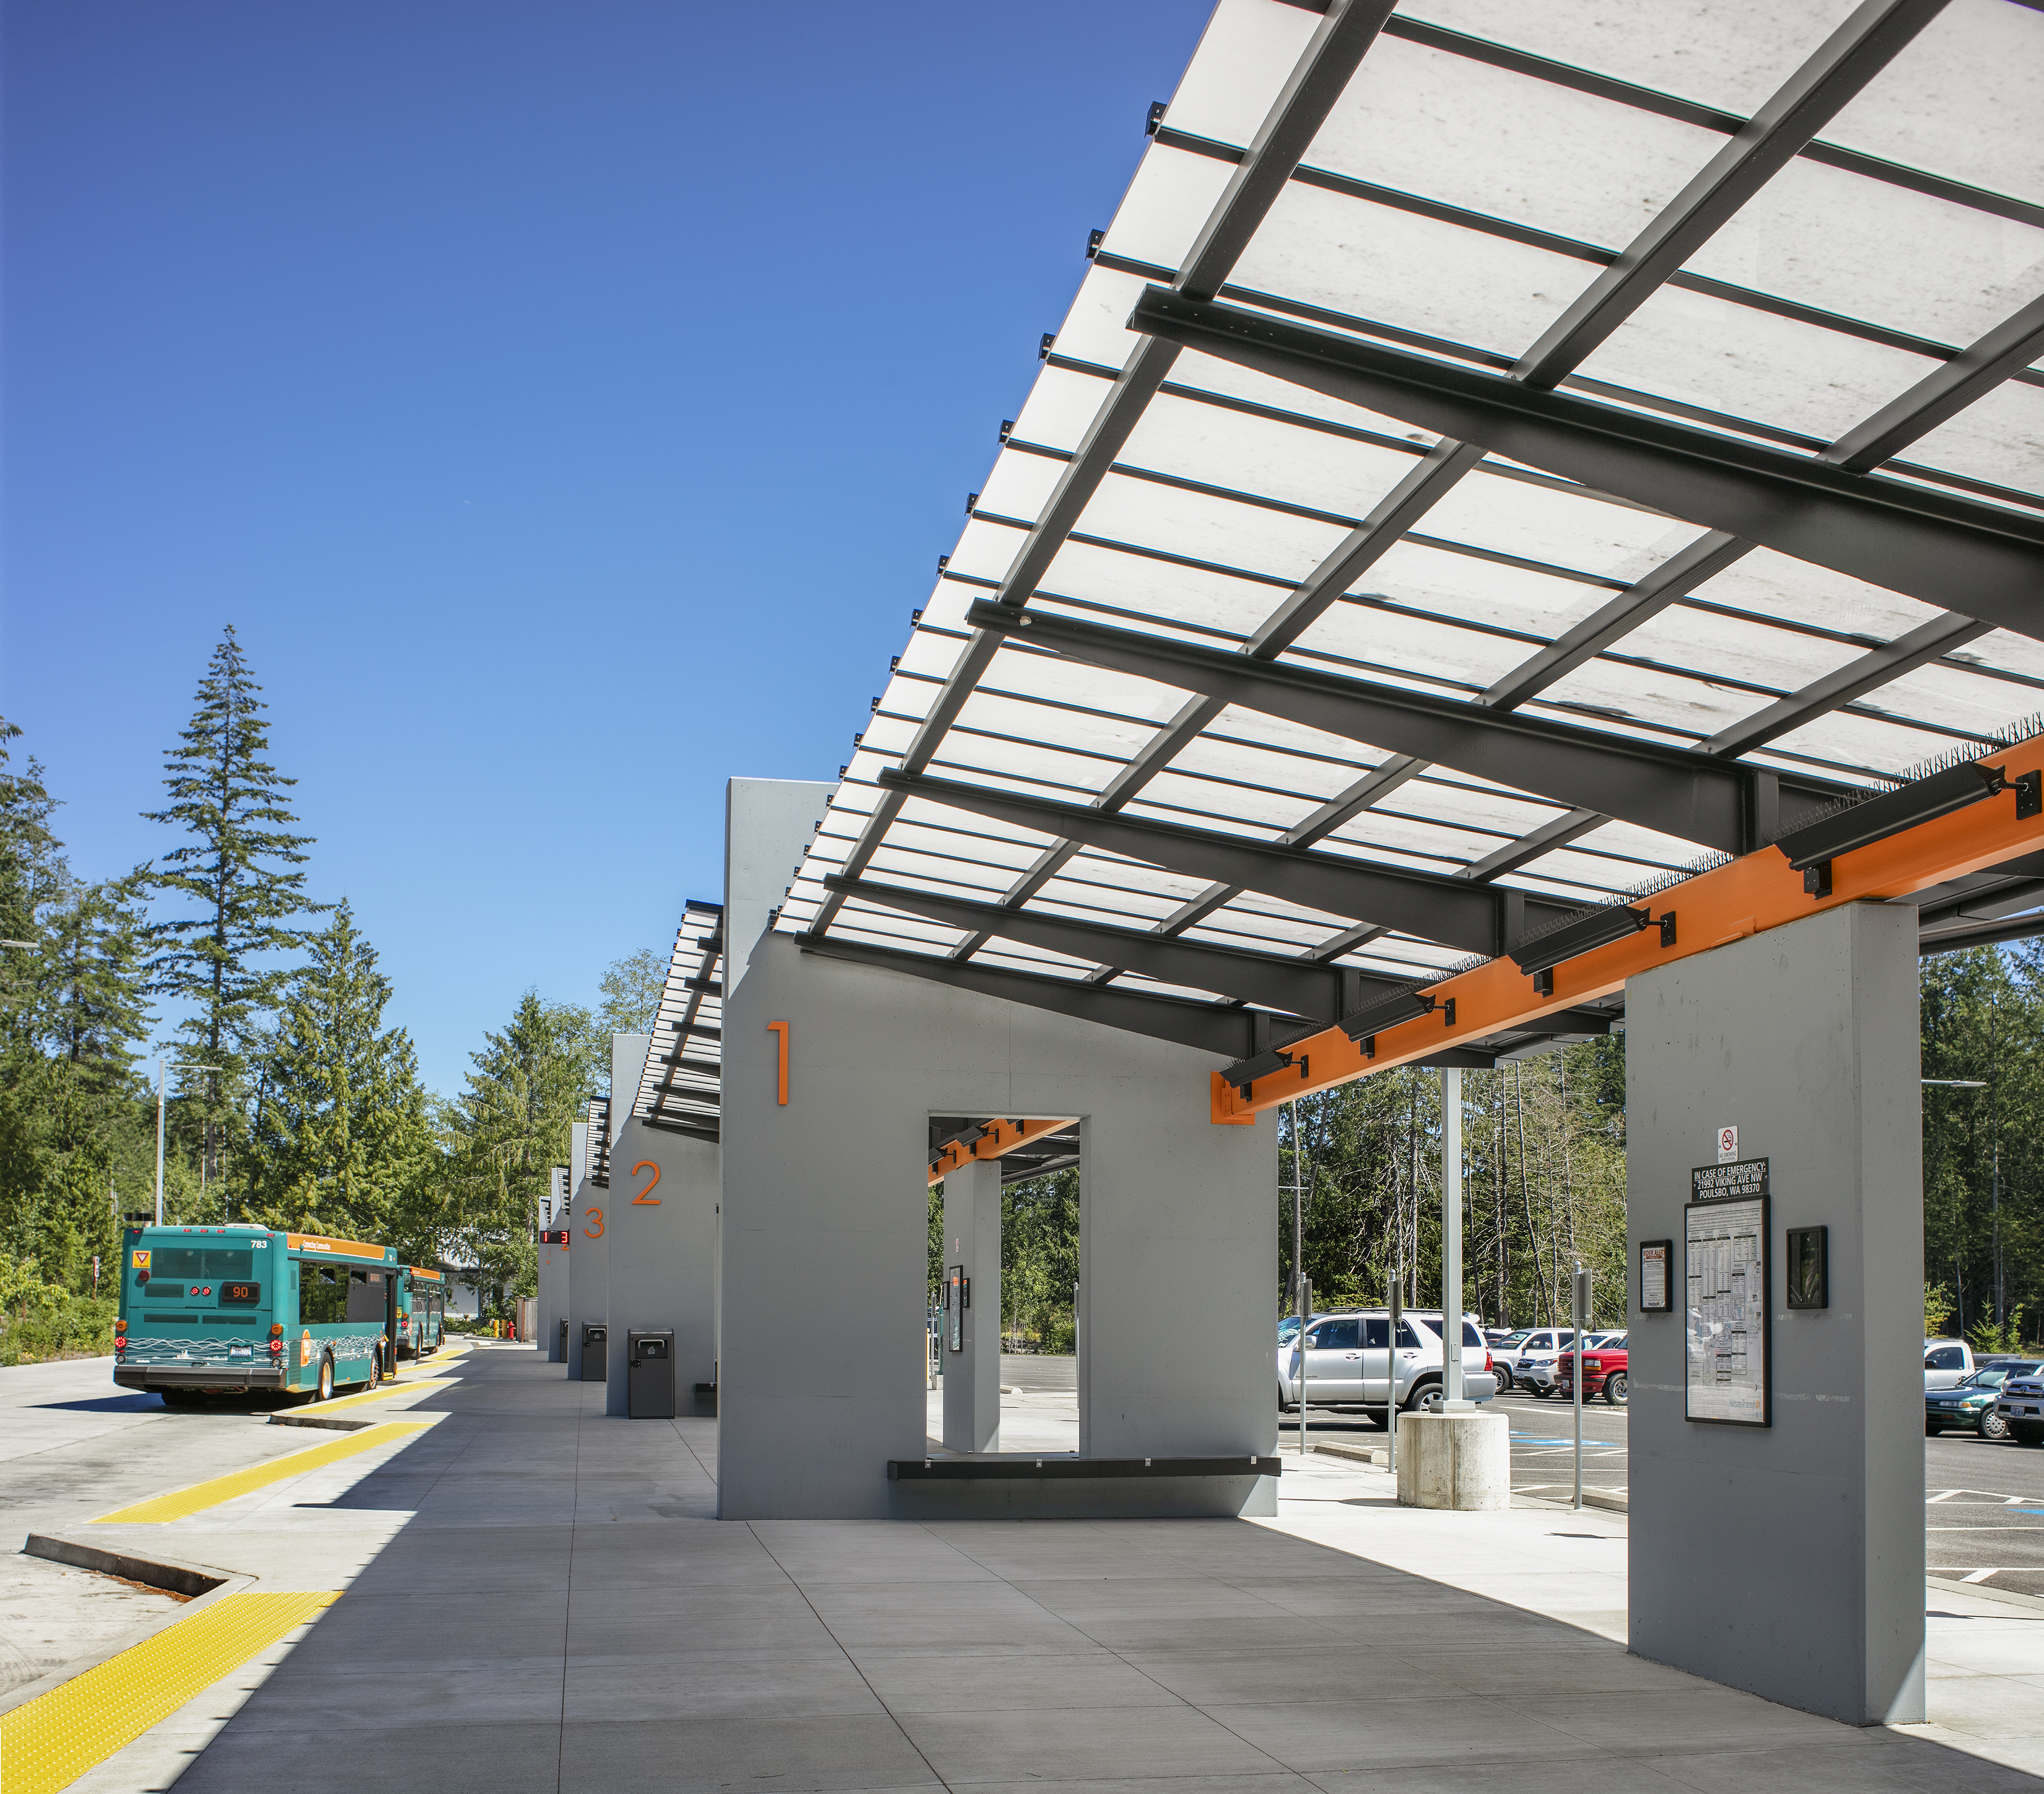 Kitsap Transit North Base and Park and Ride 4